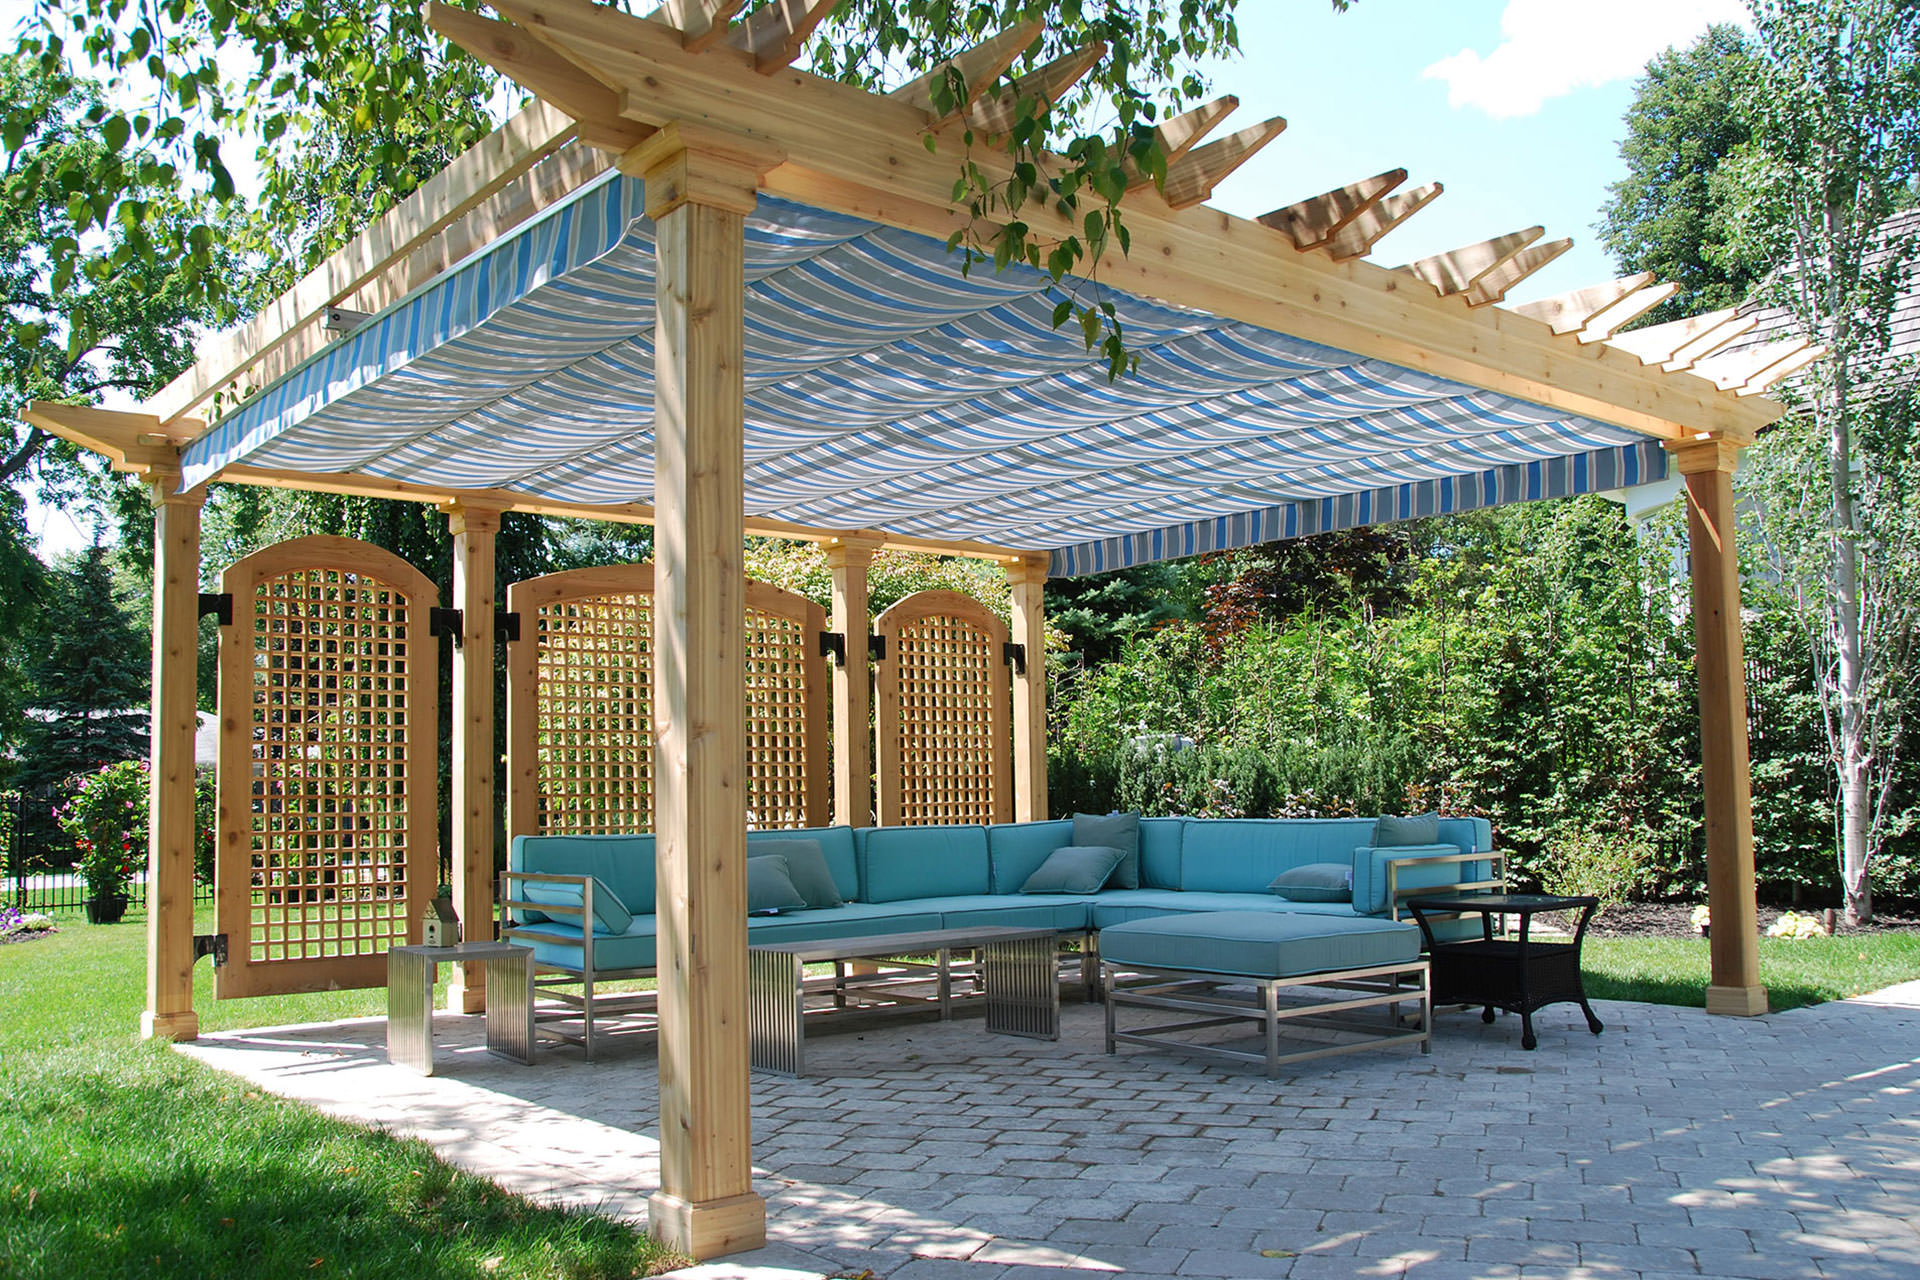 Retractable pergola canopy in oakville shadefx canopies - Pergola with roof ...